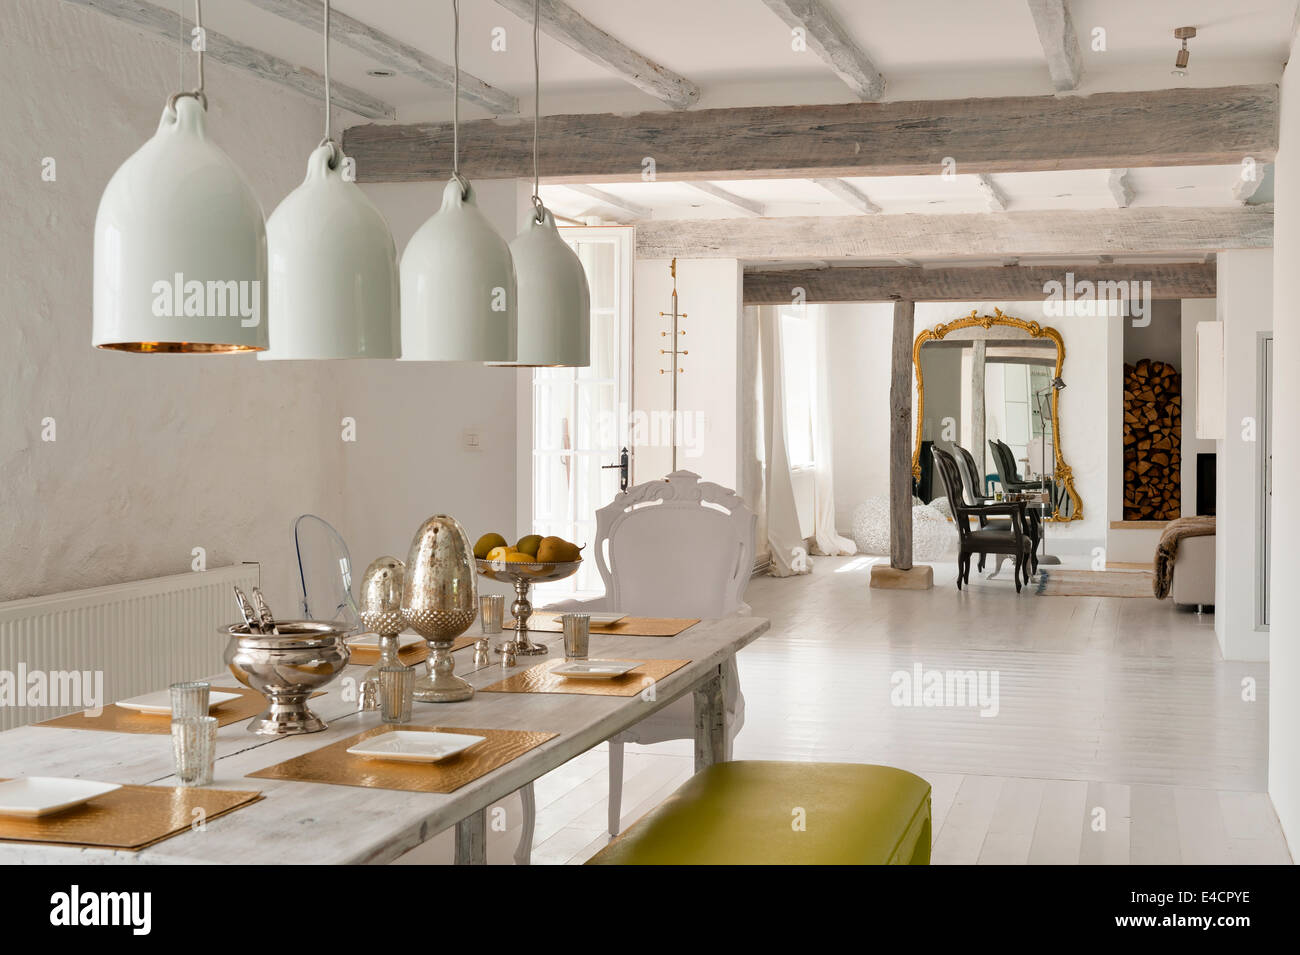 large white pendant lights hanging above an antique cherry wood dining table in open plan living space with wooden ceiling beams - Pendant Lights In Dining Room